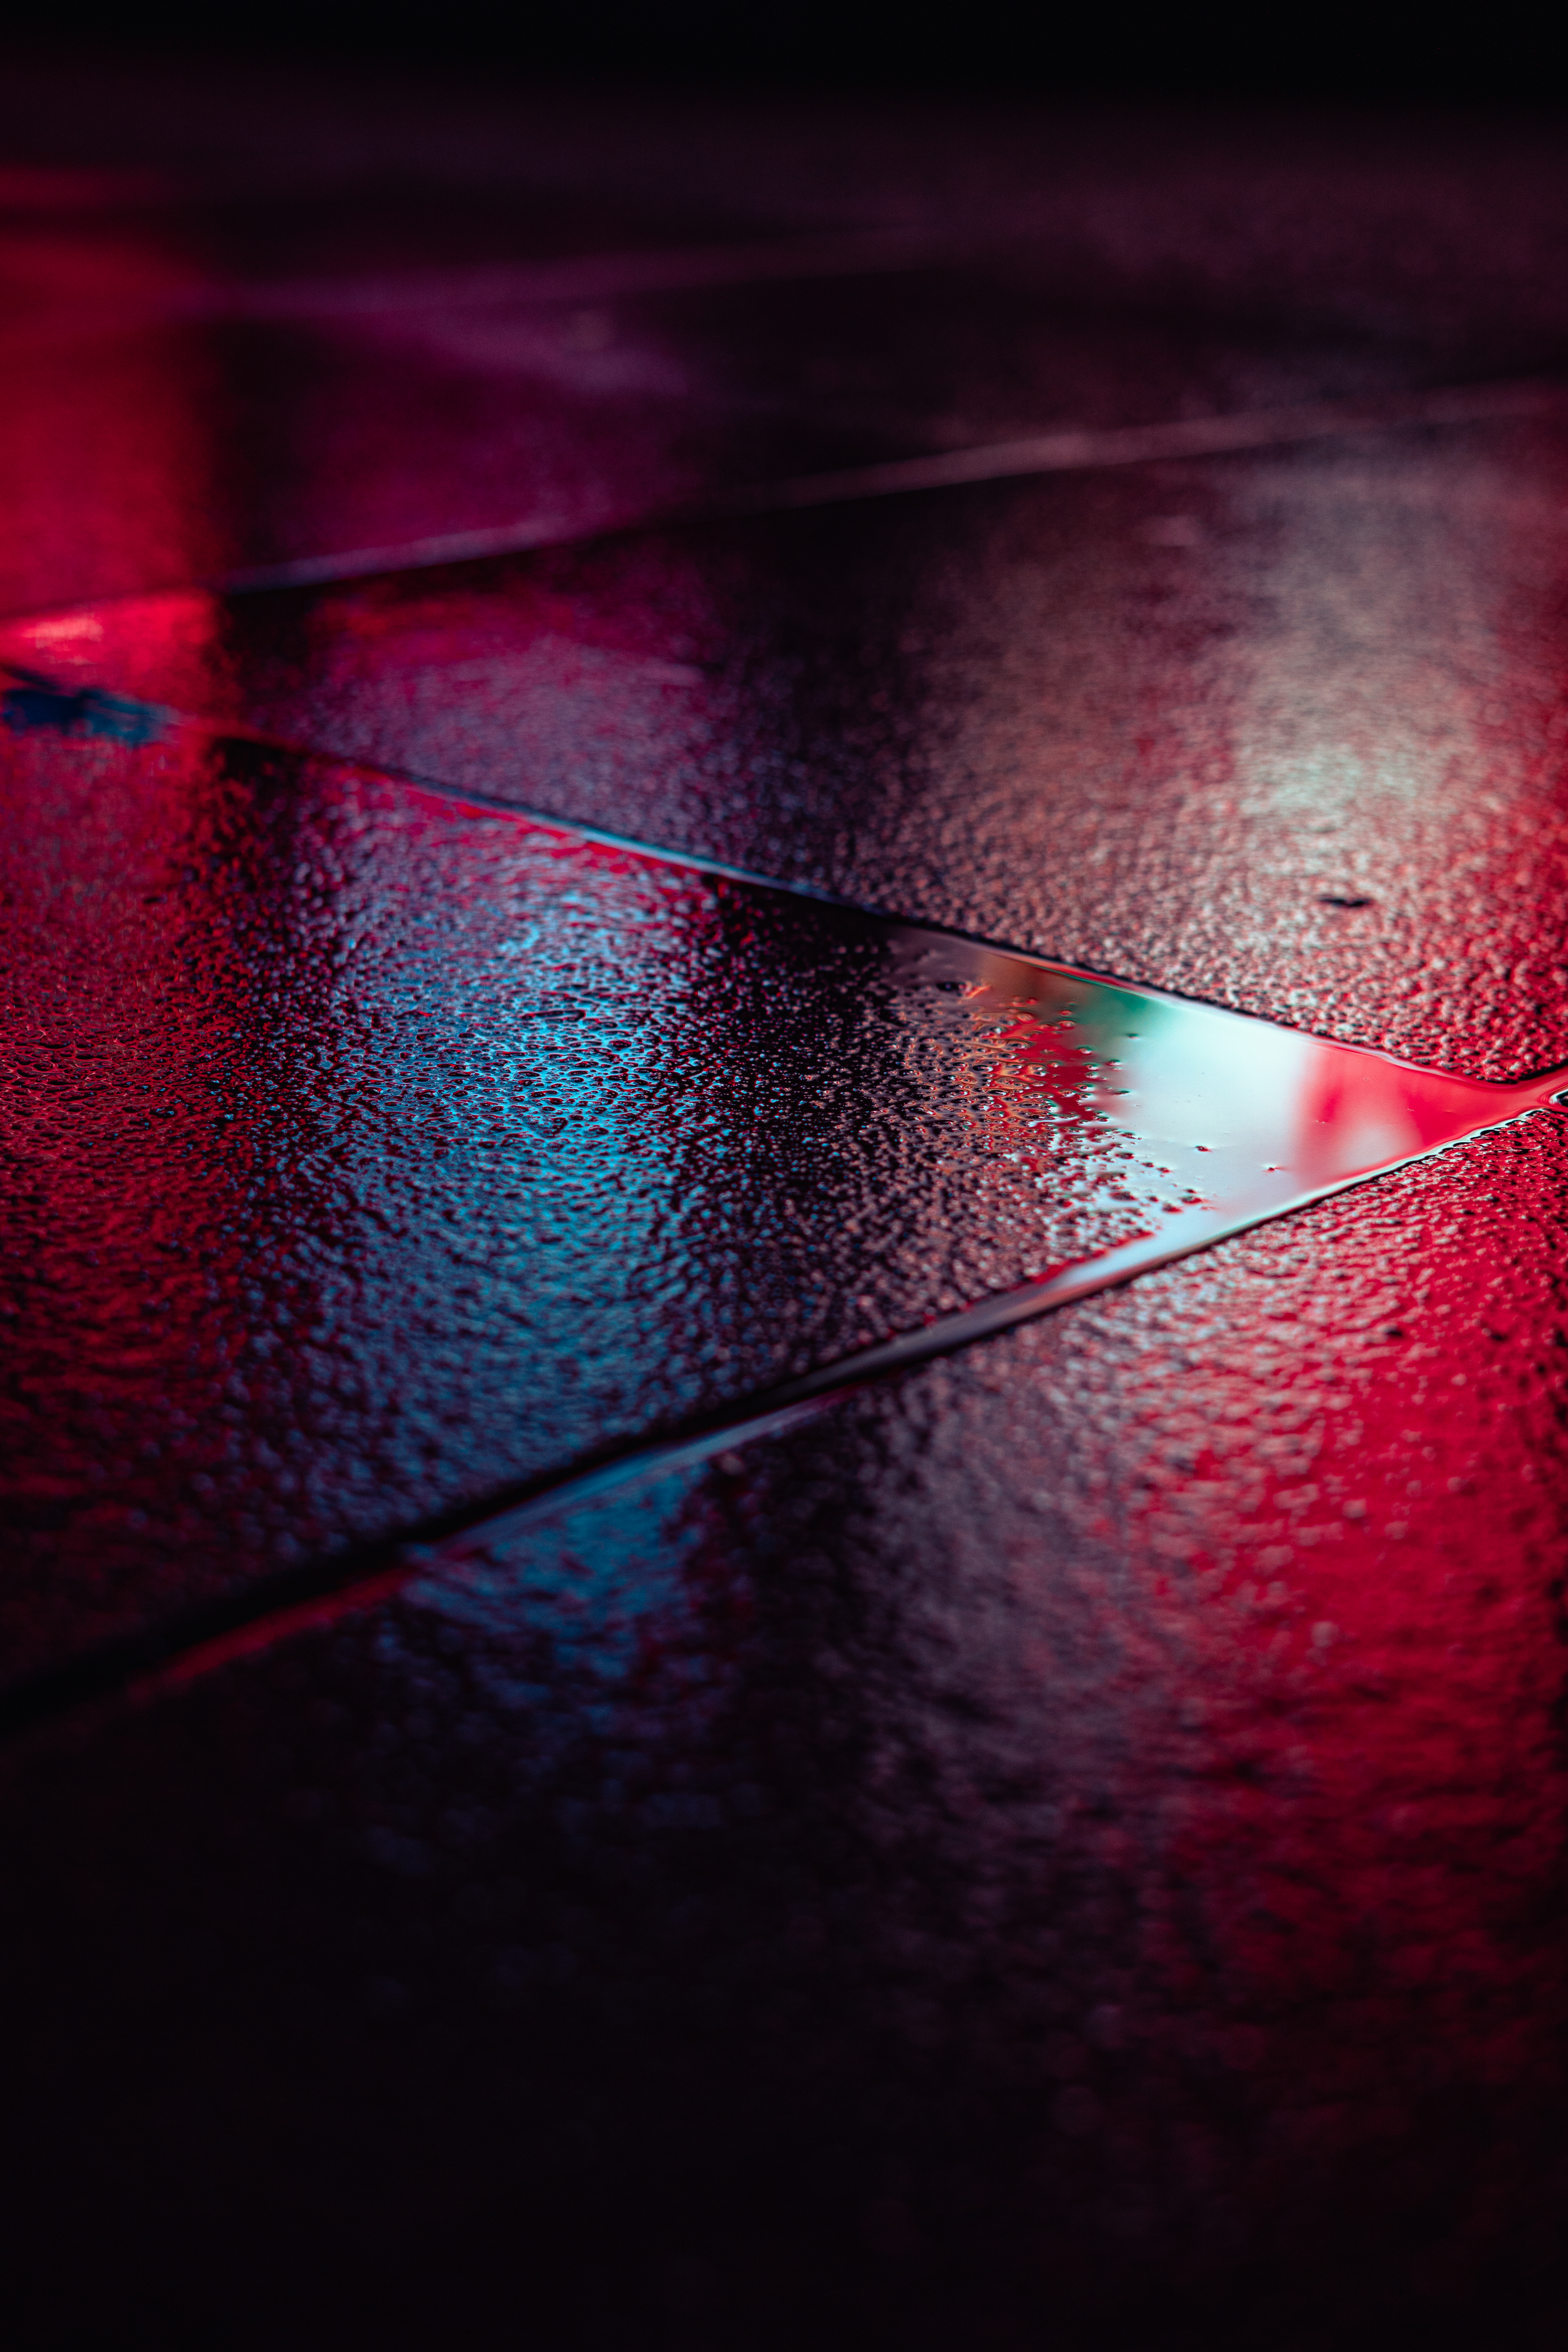 red light on black surface